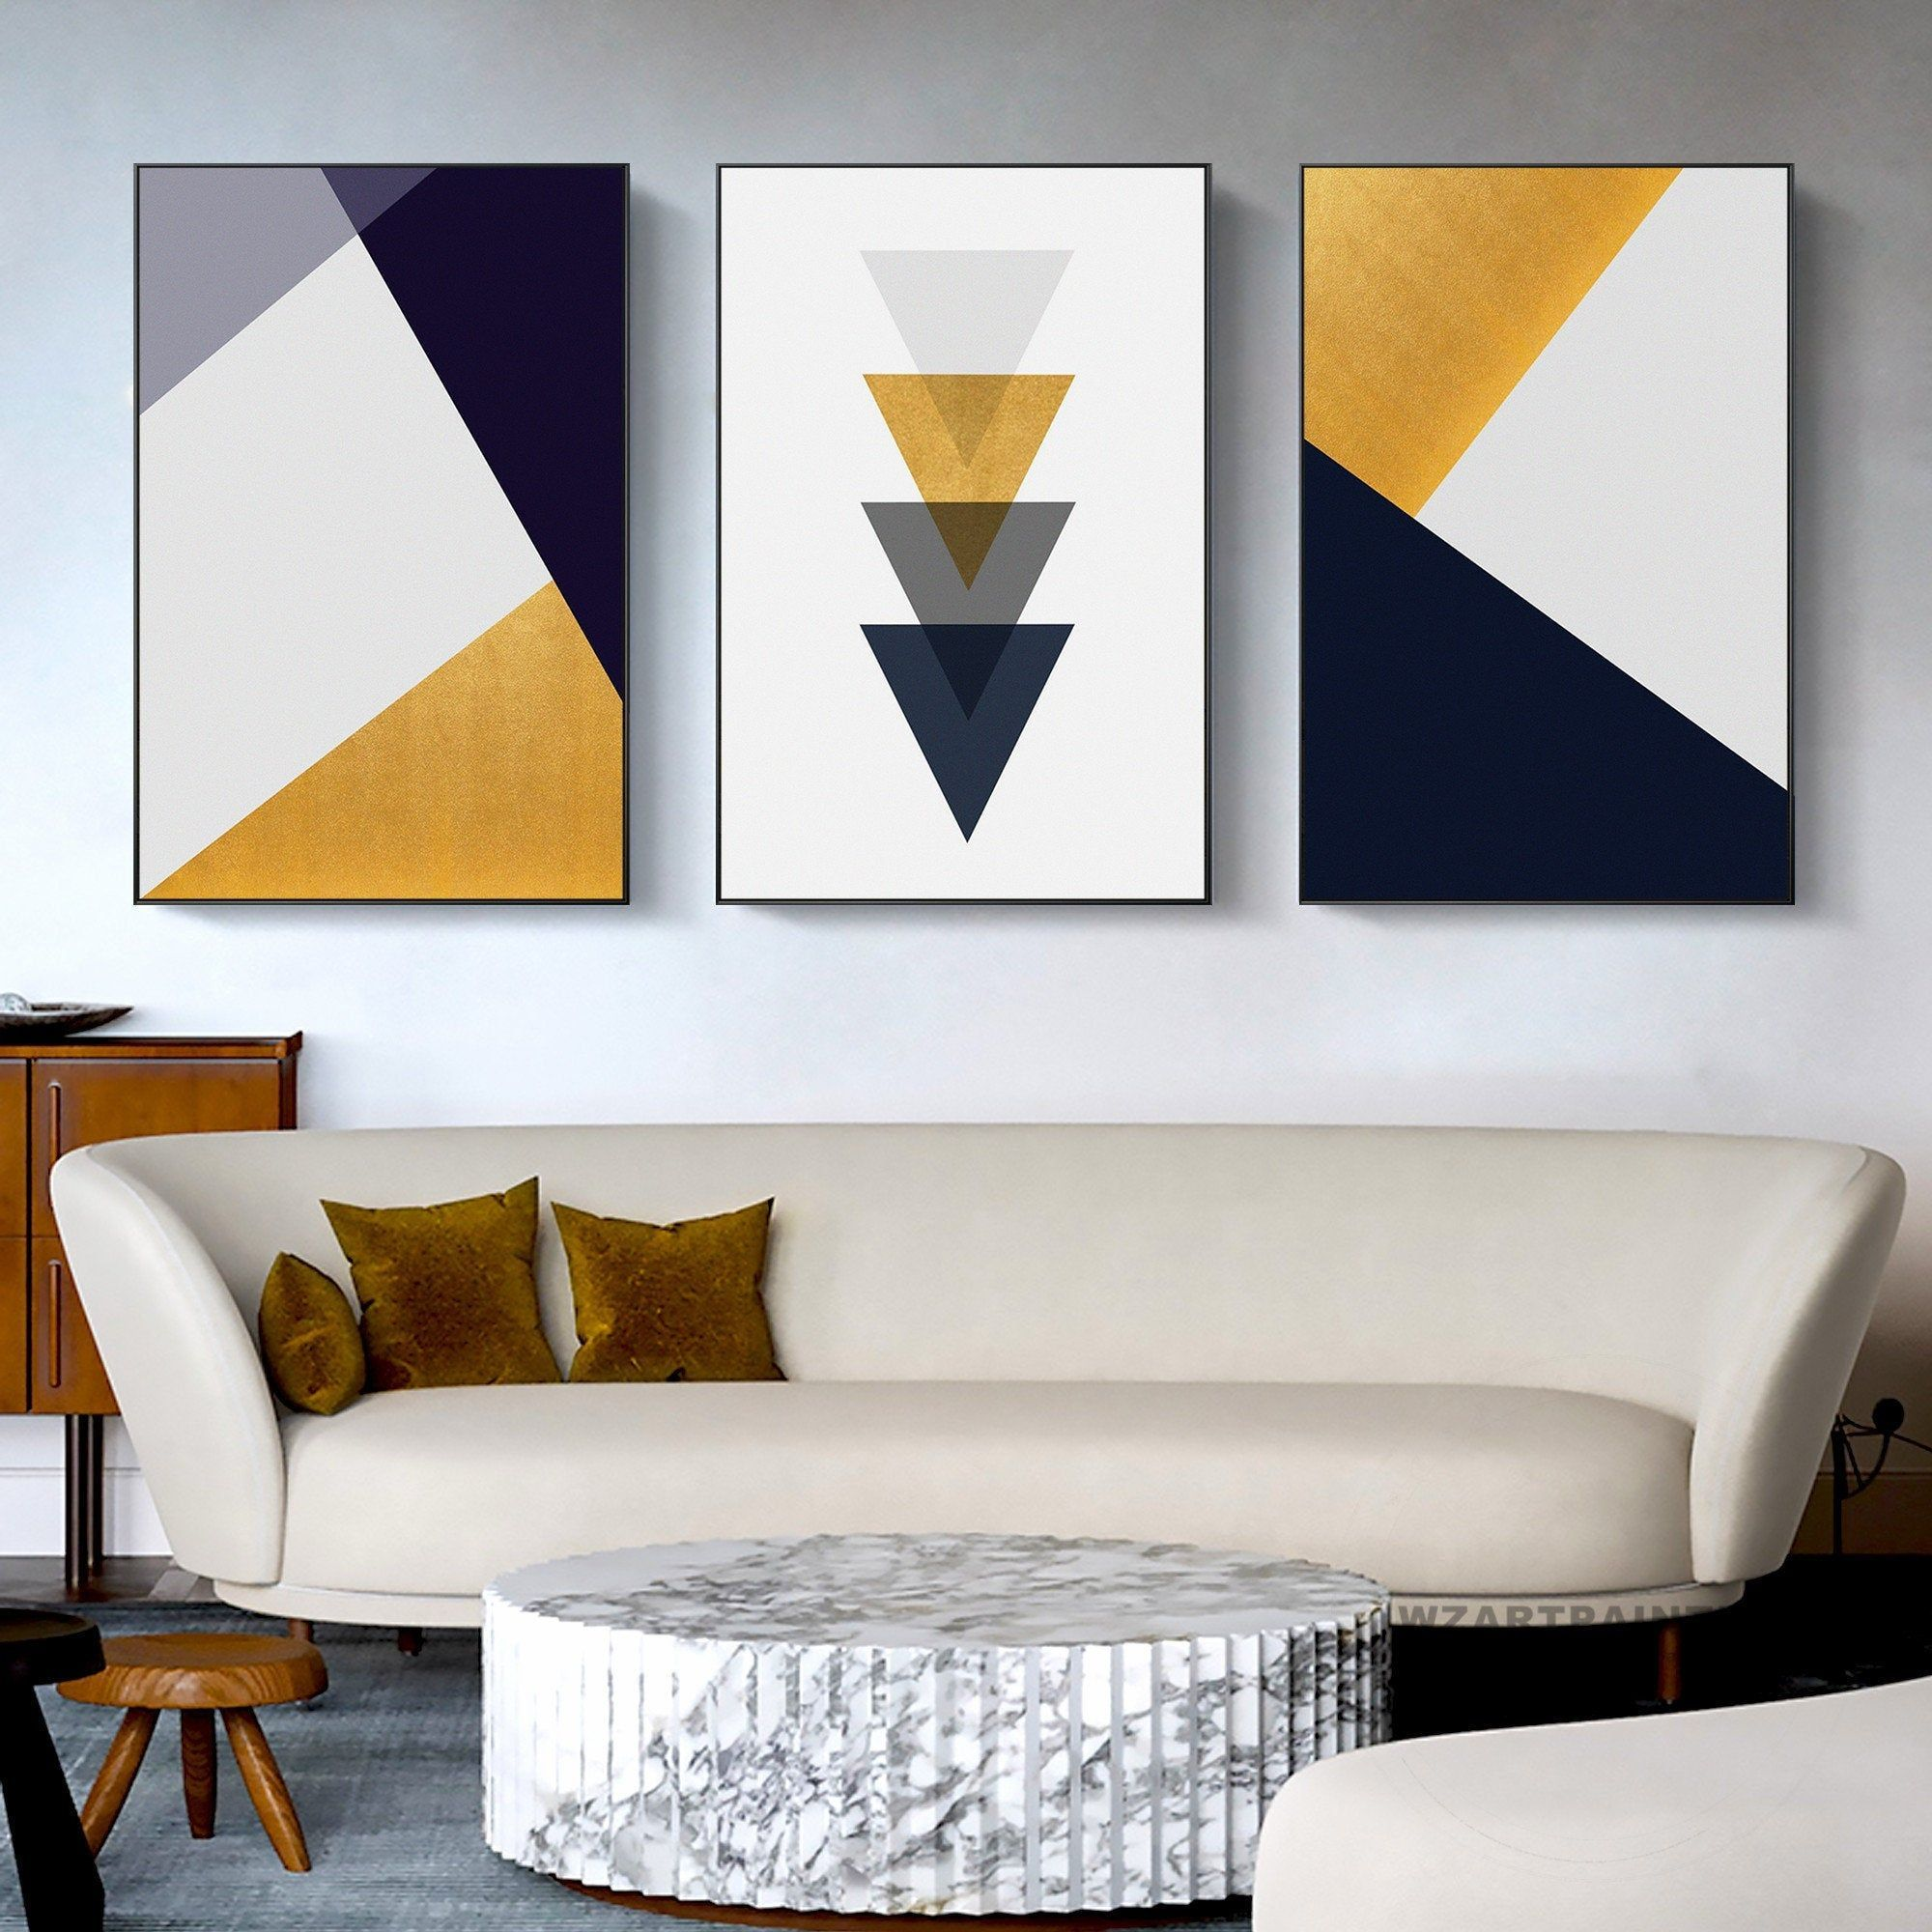 Contemporary Minimalist Wall Art Black and White Set of 3 Modern Geometric Abstract Prints Fine Art Paper or Canvas